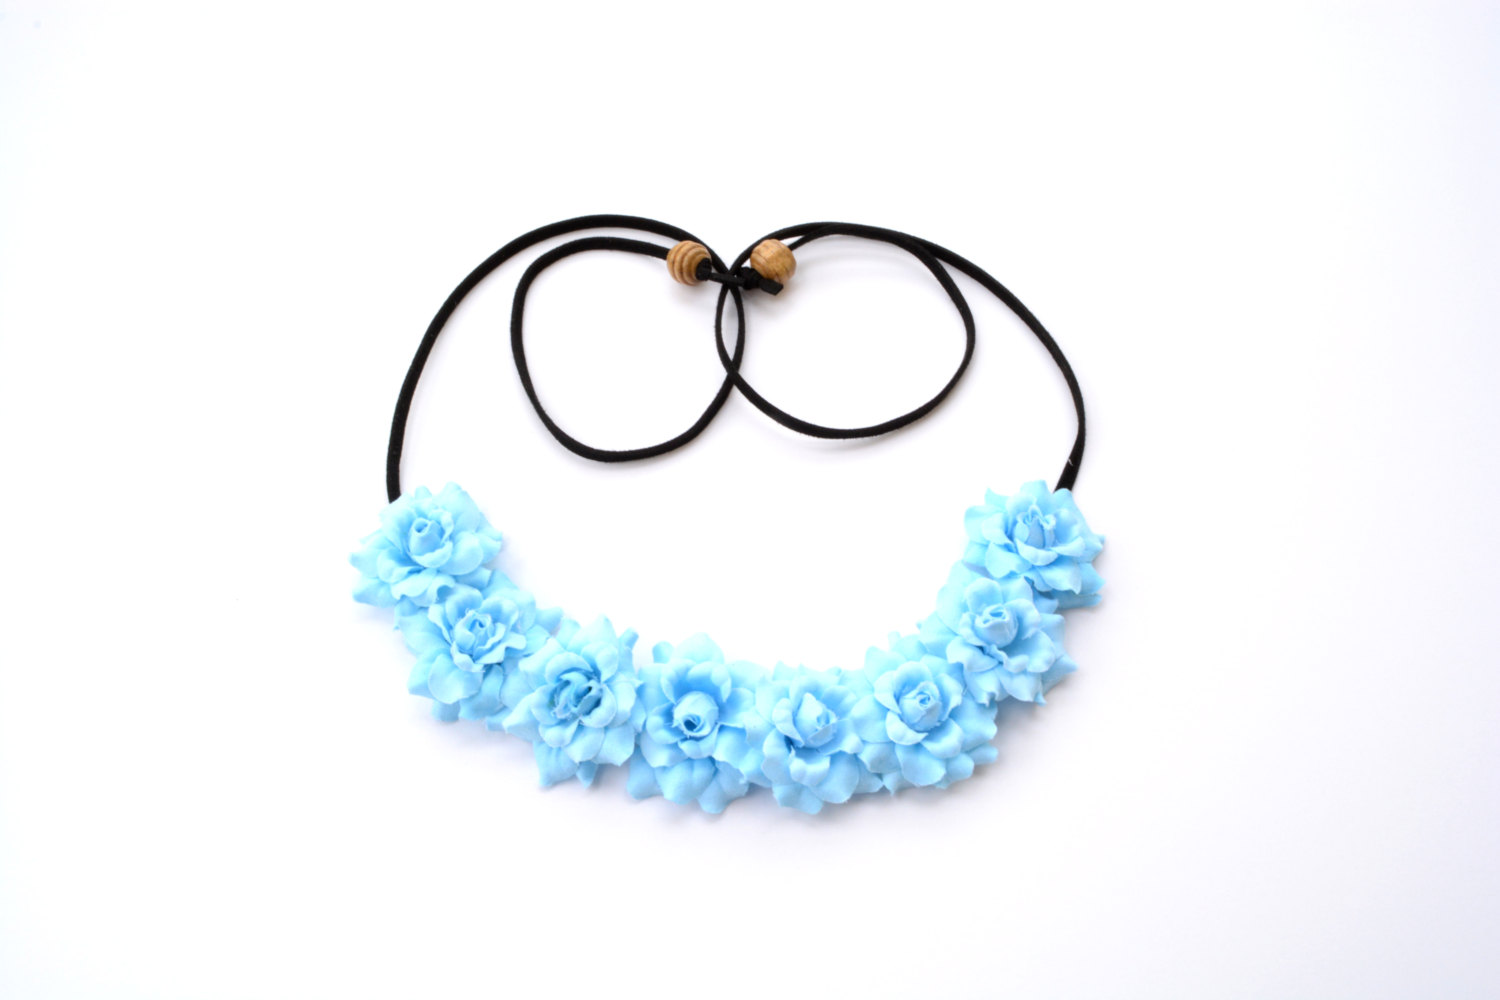 Light blue flower crown rose floral halo headband flower headpiece hippie boho bohemian spring floral hairwrap flower crown sky blue